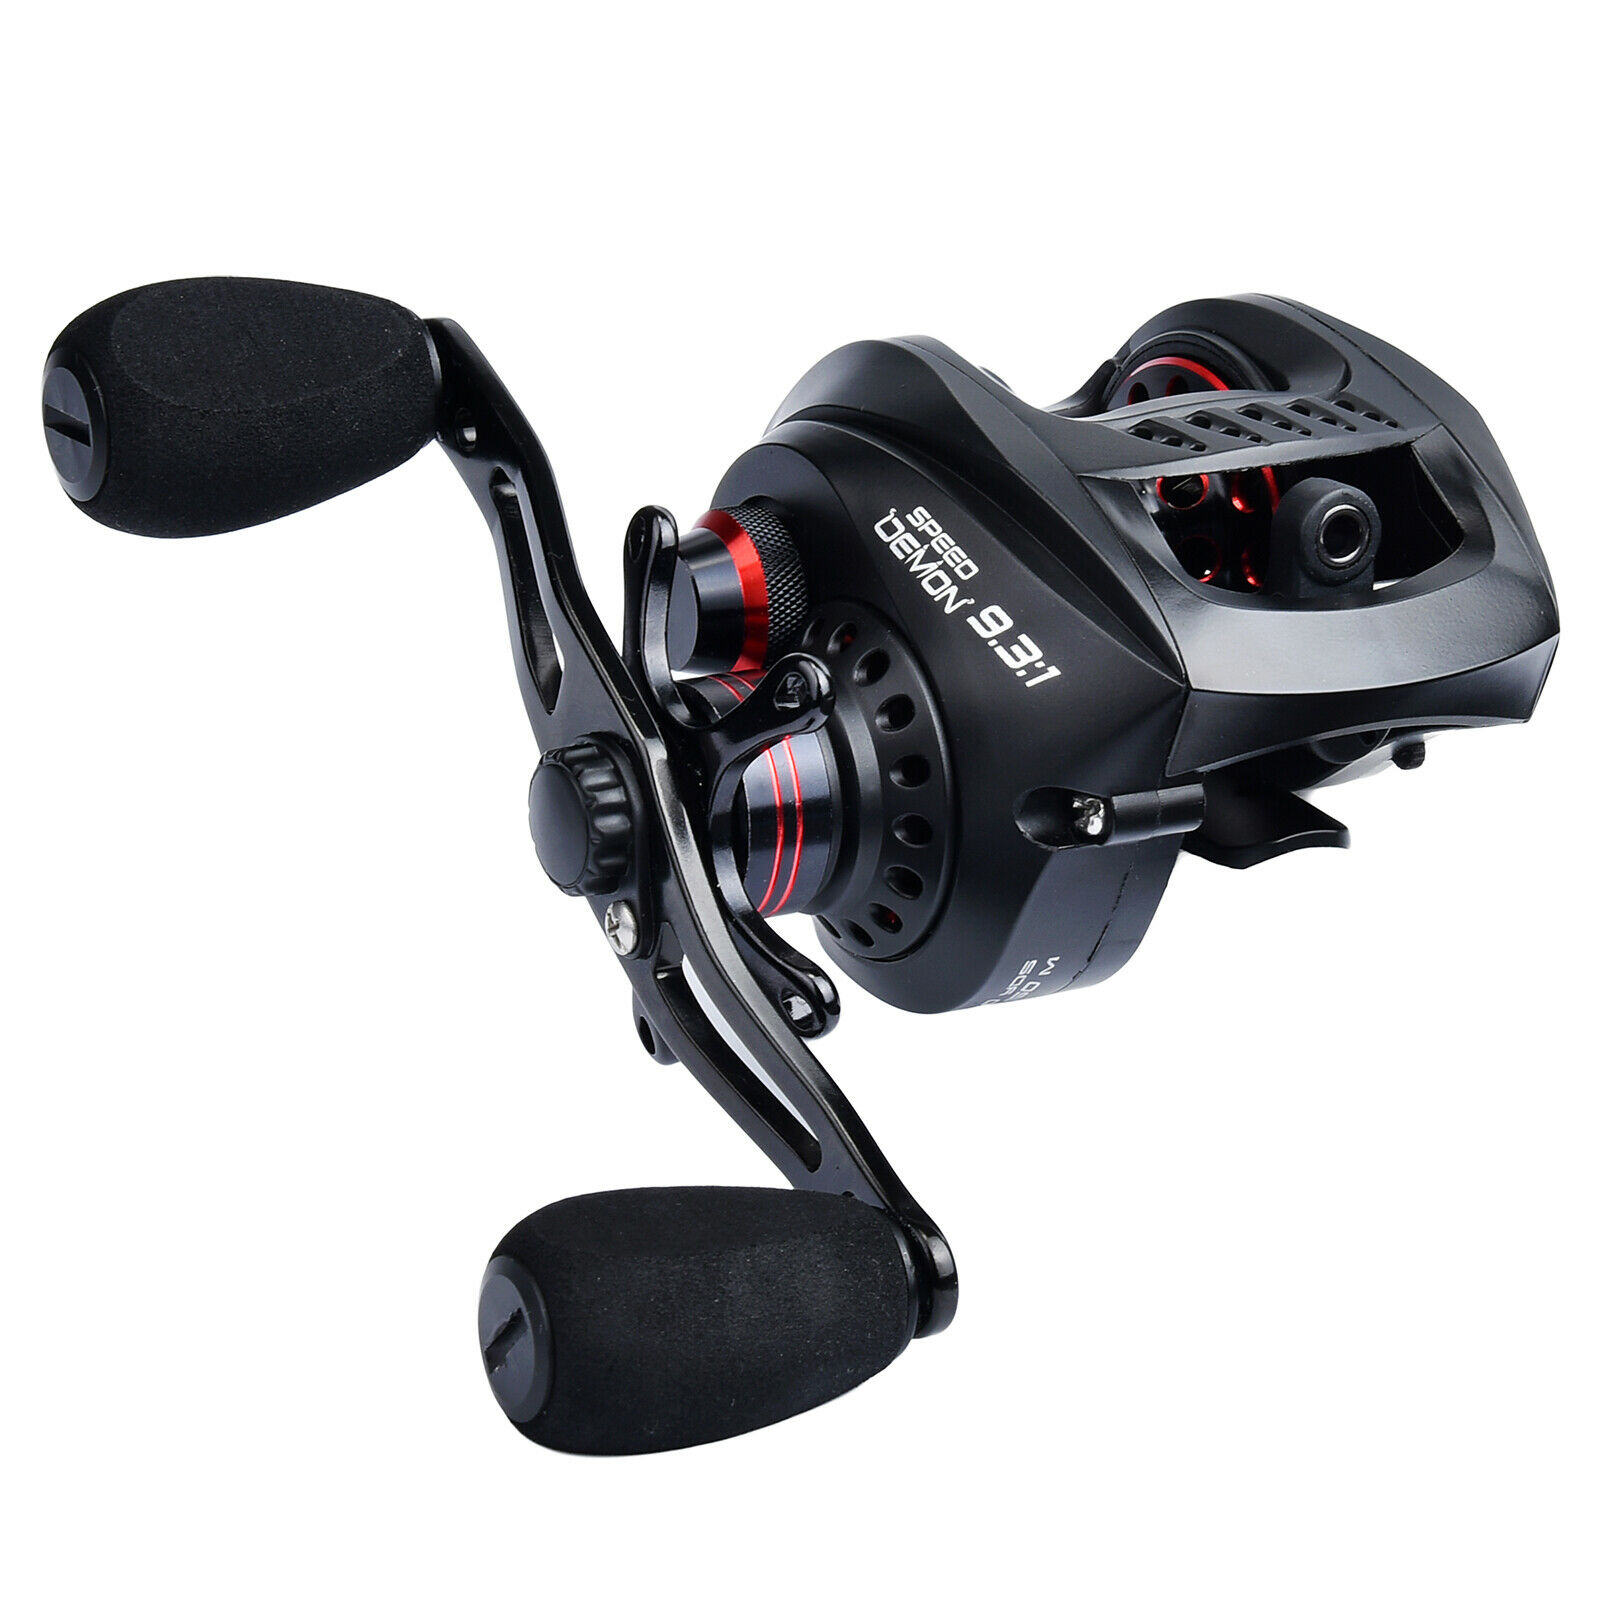 Kastking Speed Demon Baitcasting Reel – 9.3 1 Rightt-Handed Lure  Fishing Reel  deals sale